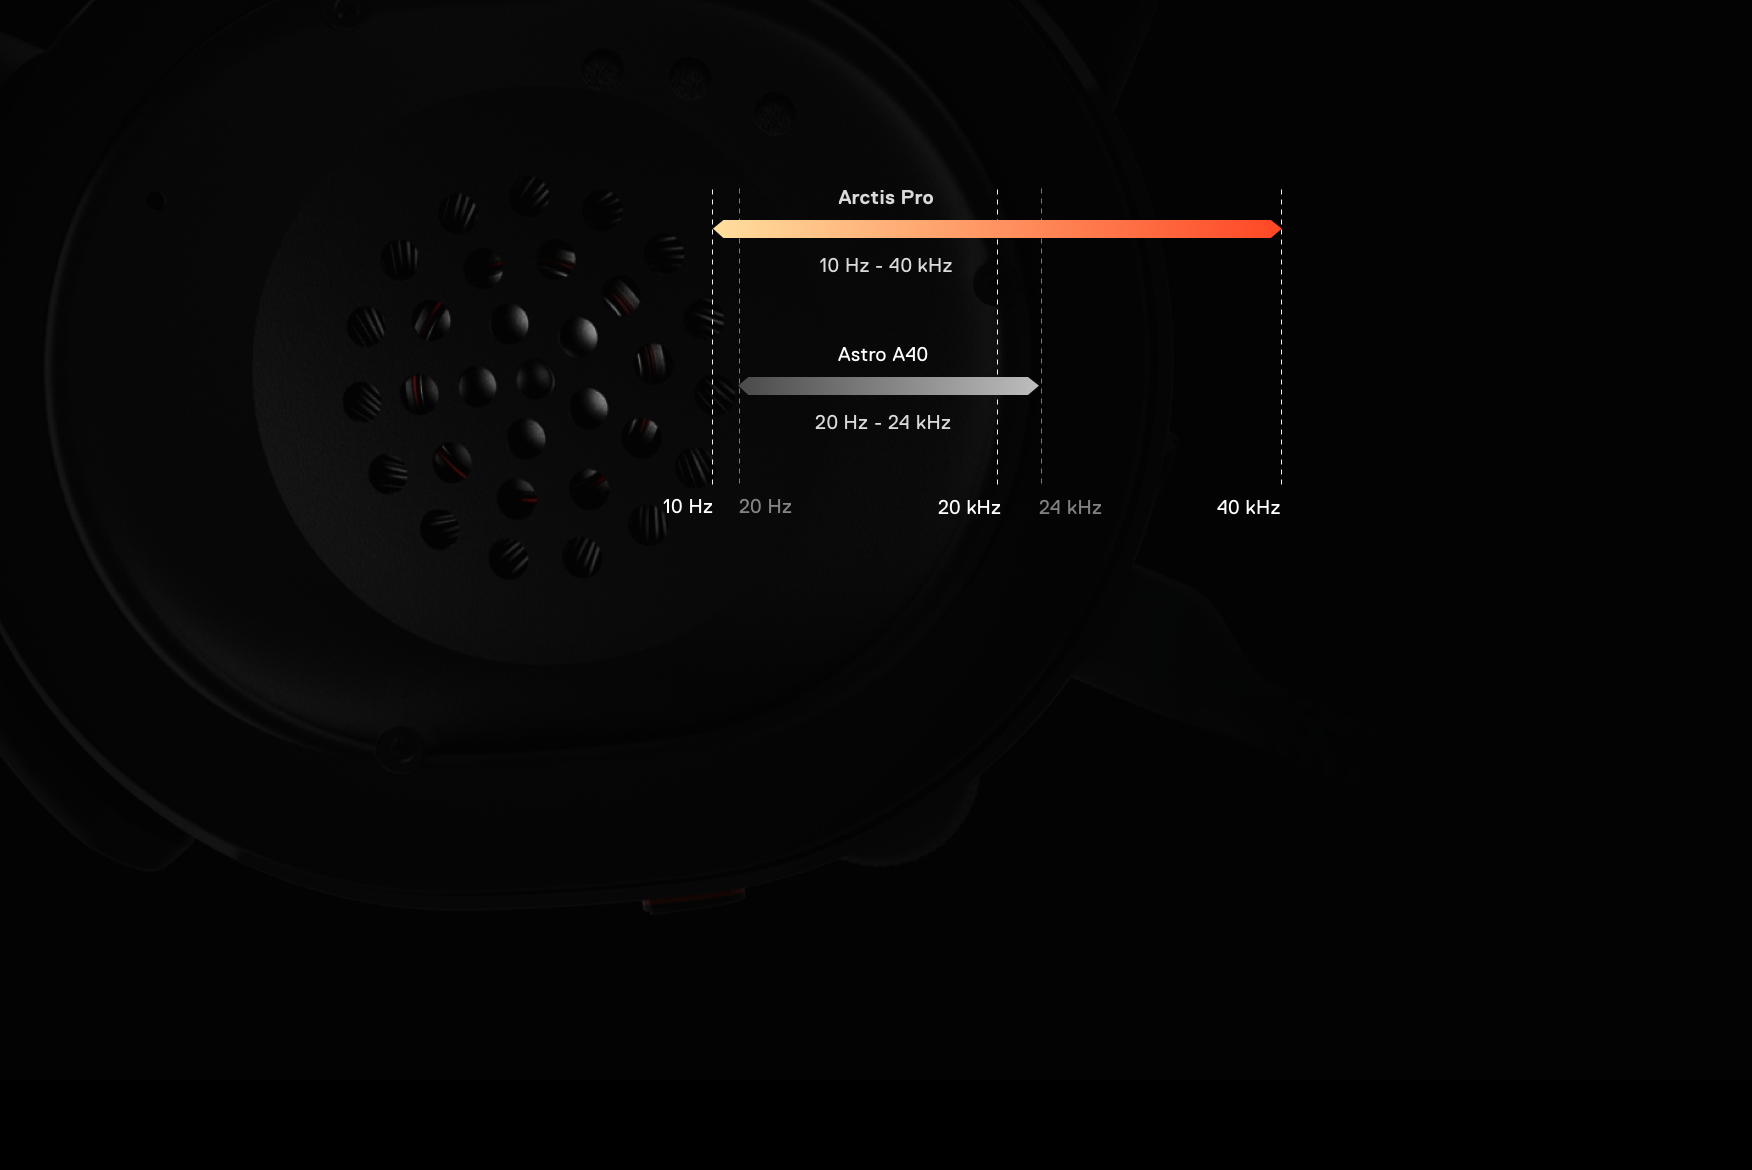 SteelSeries Arctos Pro headset ear cup with a frequency chart between 10Hz to 40kHz, showing the Arctis Pro has the full range as compared to the Astro A40 that is only between 20Hz - 24kHz